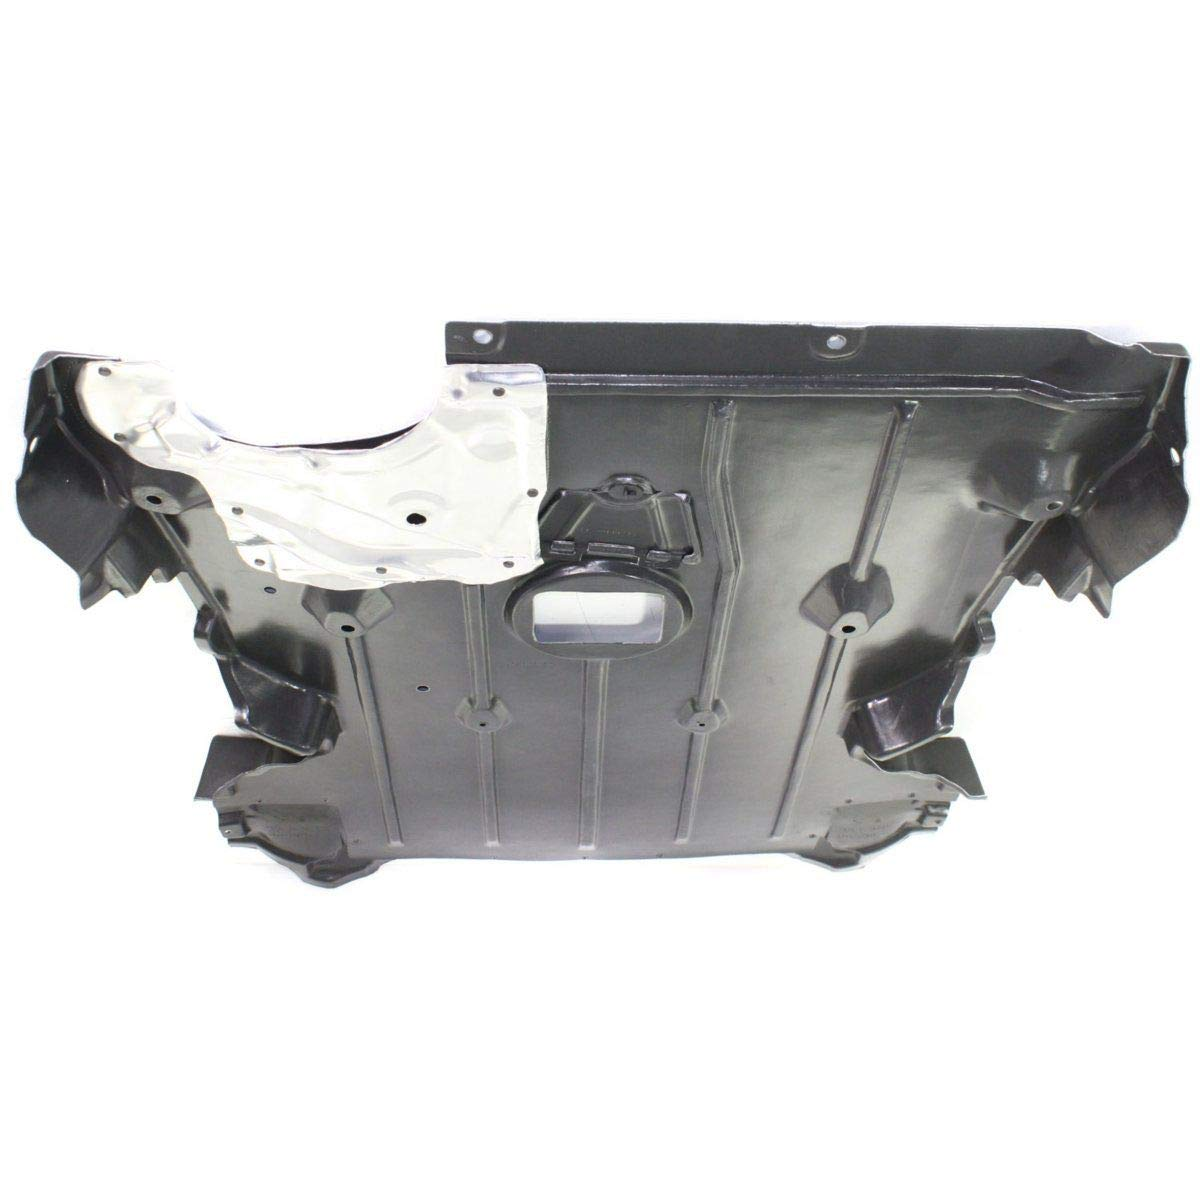 New Front Rearward Undercar Shield For 2008-2013 Bmw 1-Series Fits 135I//135IS Coupes BM1228139 51758046494